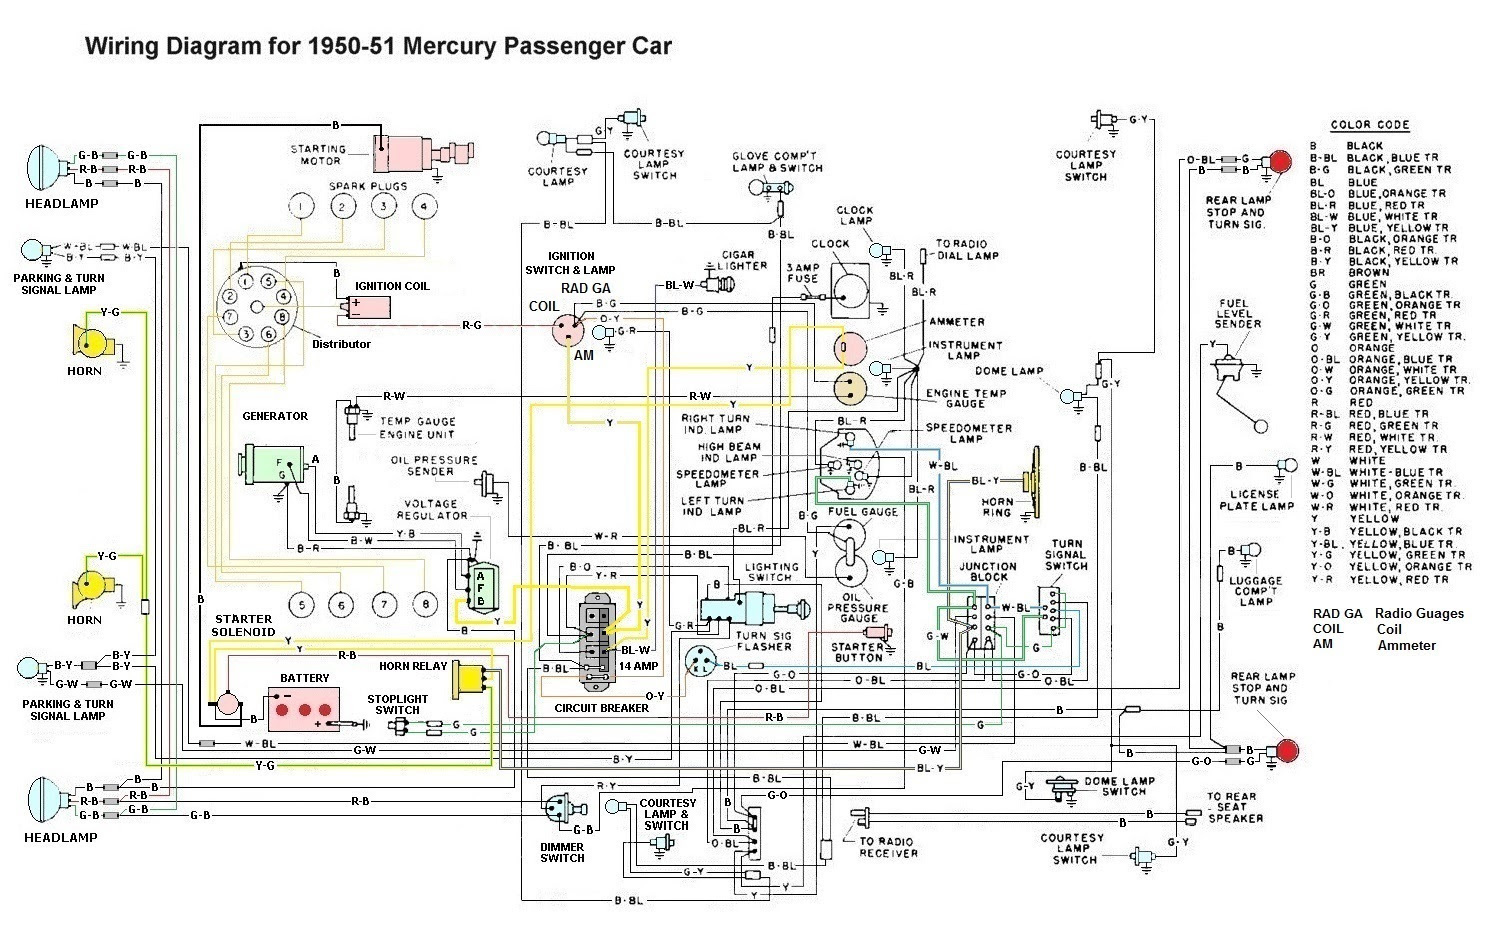 49 Chevy Truck Wiring Diagram - Wiring Diagram Networks